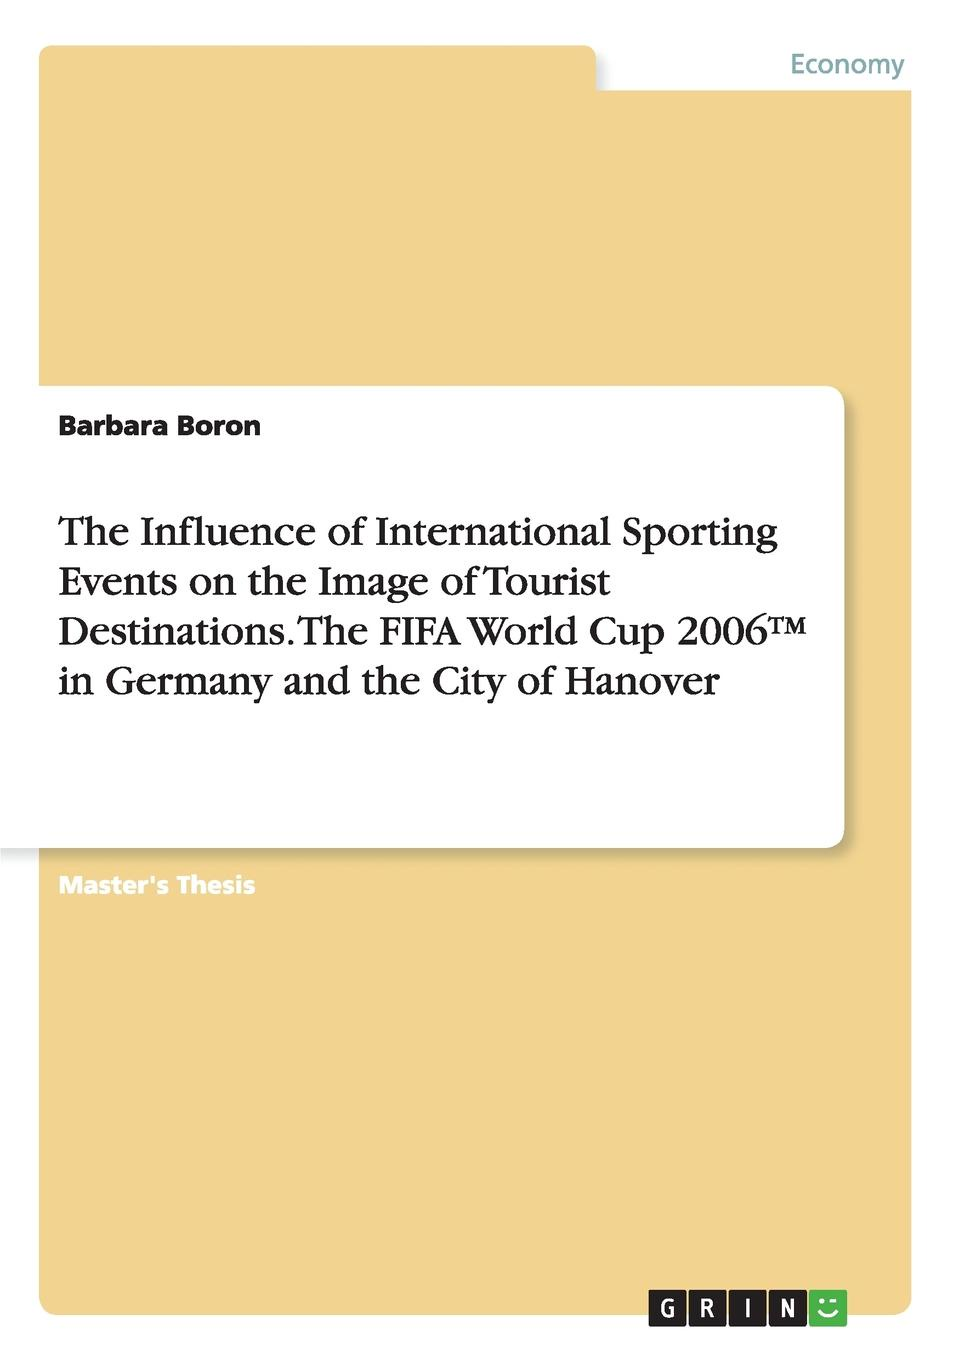 Barbara Boron The Influence of International Sporting Events on the Image of Tourist Destinations. The FIFA World Cup 2006. in Germany and the City of Hanover